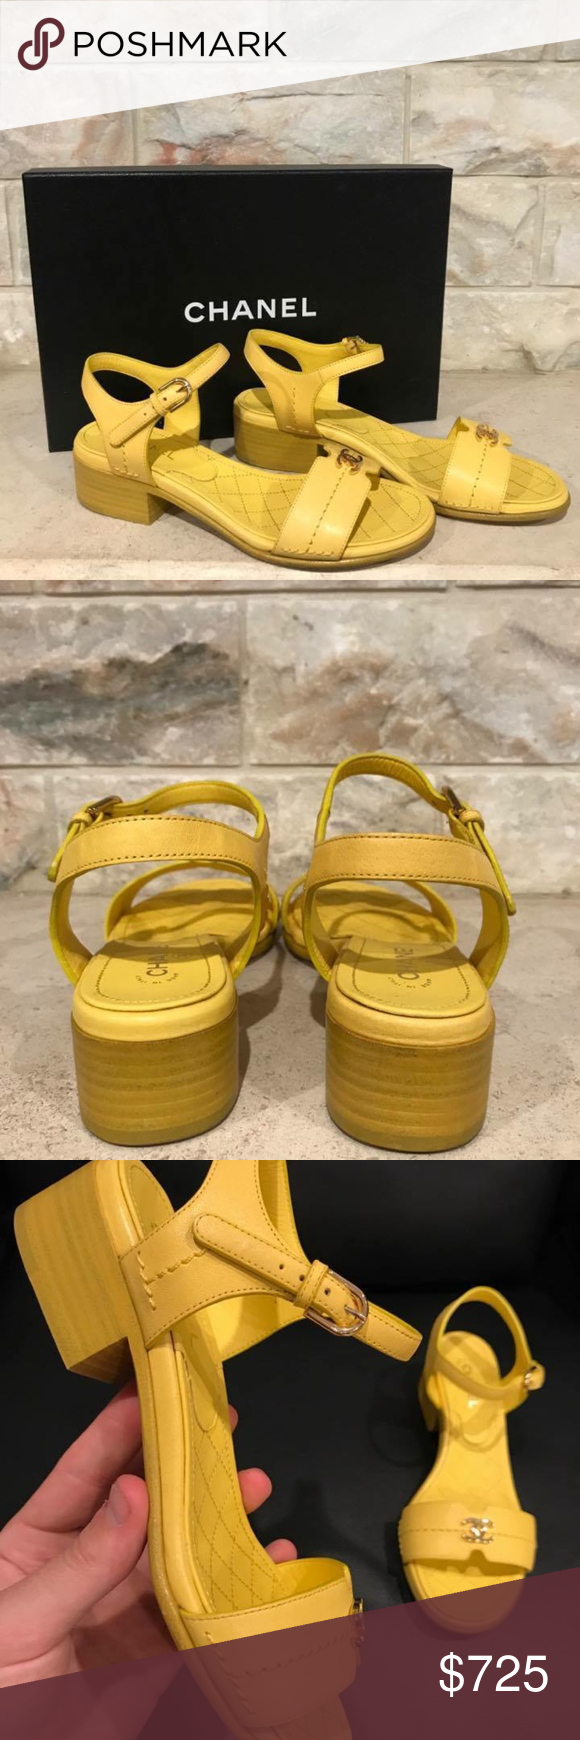 Chanel 17P Yellow Leather CC Gold Logo Slide Heel Chanel 17P Yellow Leather CC Gold Logo Slide Heel Sandal Flip Flop Flat 36  ********** Chanel **********  Brand: Chanel Size: 36 (know your Chanel size)  Name: Ankle Strap Color: Yellow Style: 17P Style#: G32401X52128 Material: Calfskin Leather Front toe band with gold CC logo Yellow calfskin leather material Adjustable ankle strap buckle 25mm small back heel Brand new in box, comes with original box and dust bag CHANEL Shoes Sandals